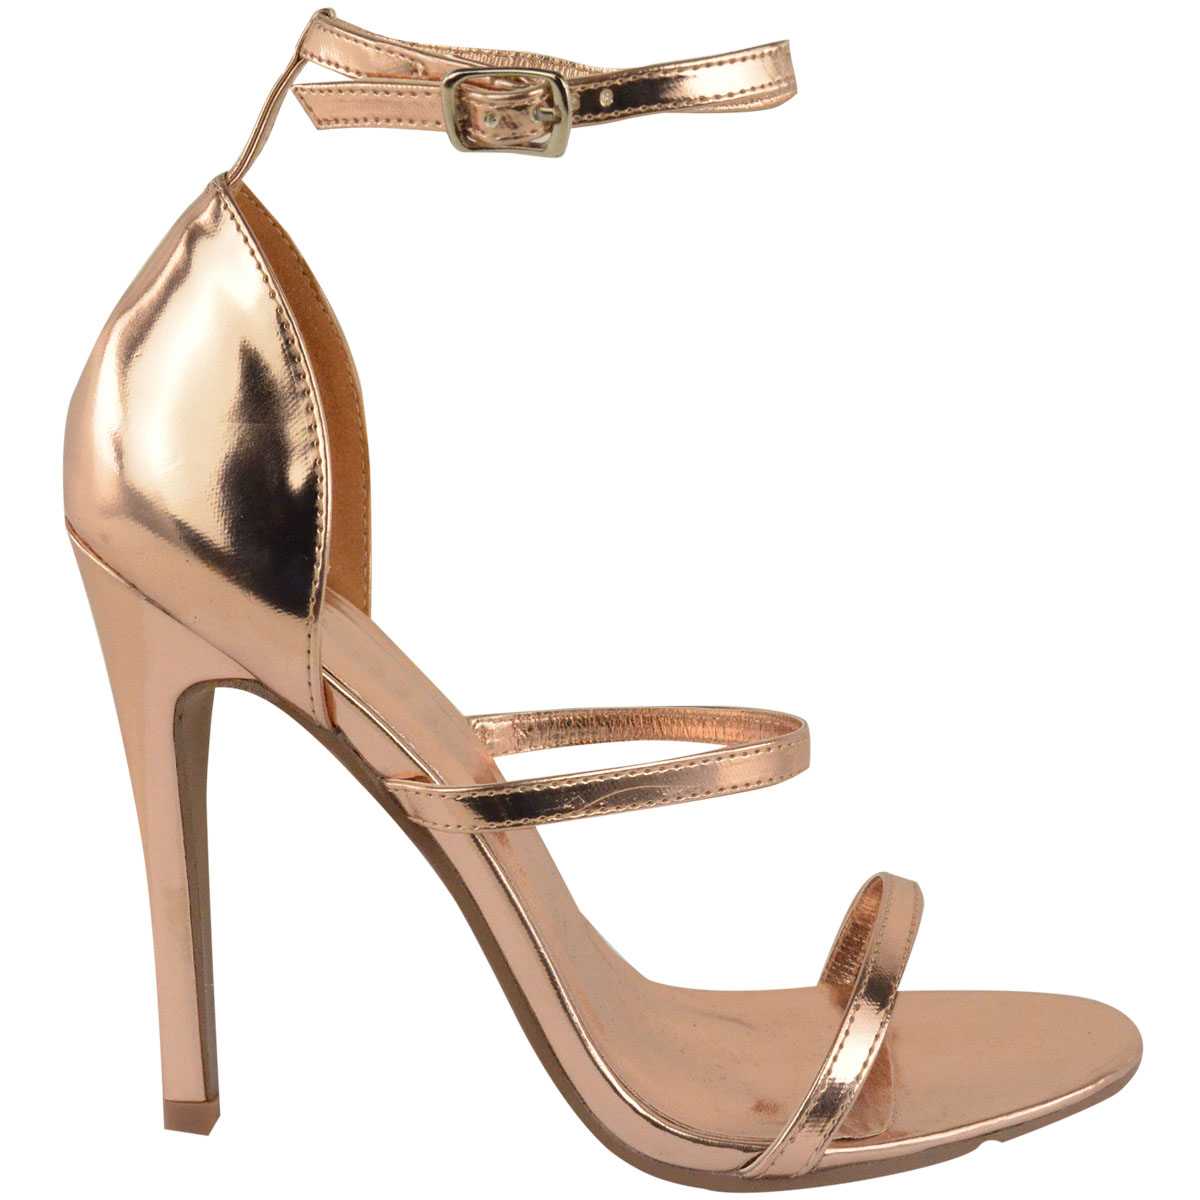 45ca5b31e9a Details about Womens Ladies Rose Gold Barely There High Heel Party Sandals  Ankle Strappy Shoes